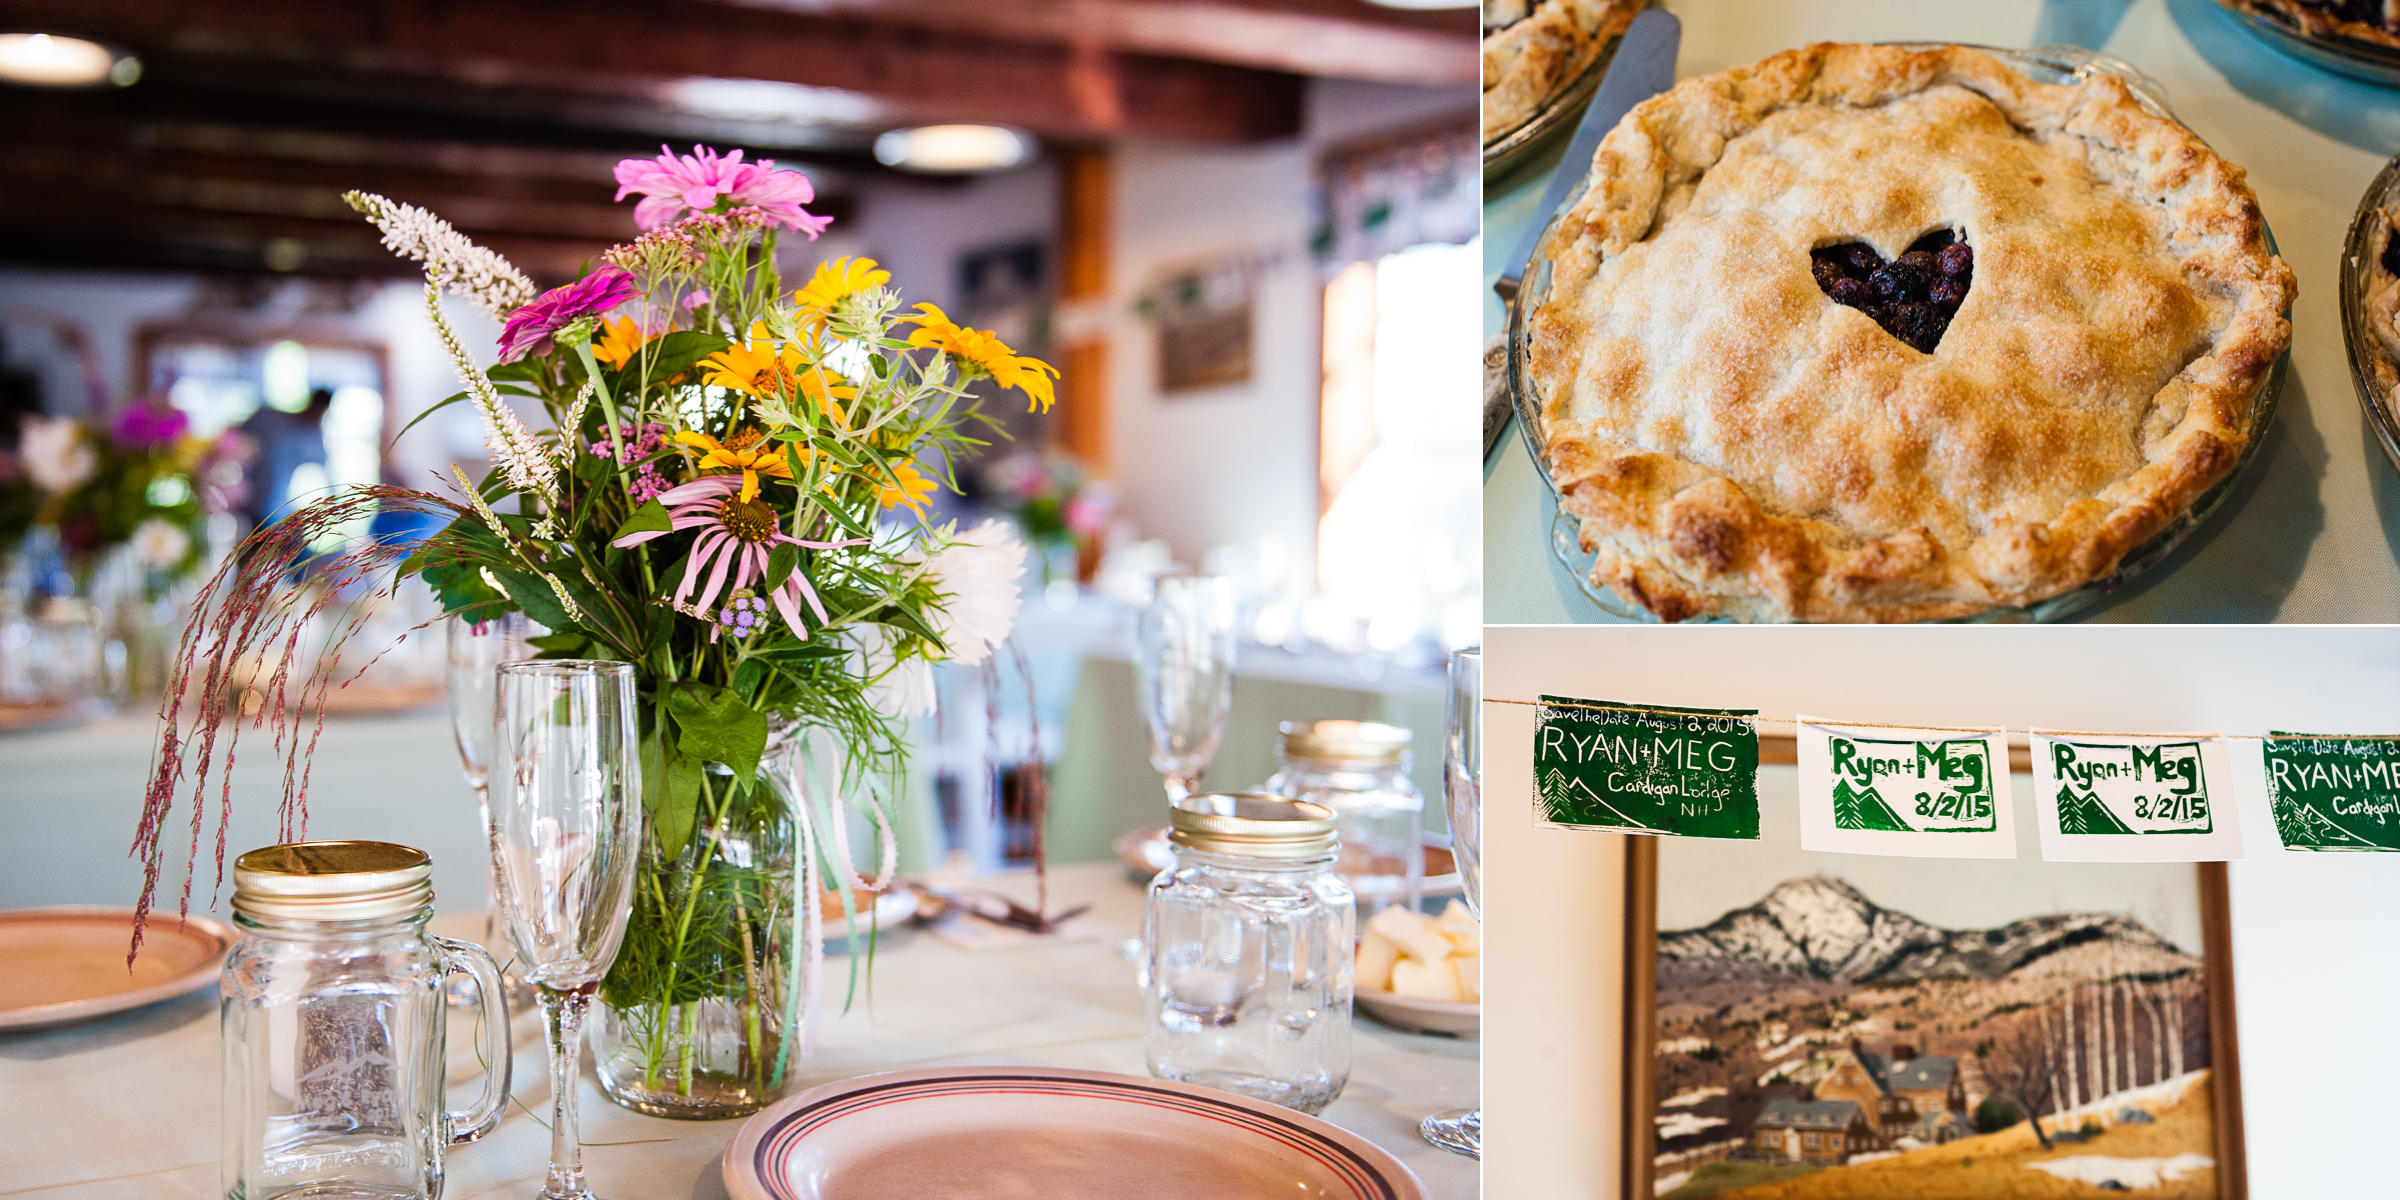 beautiful wildflowers adorn the tables and pies for dessert are some of the highlights of this mountain wedding